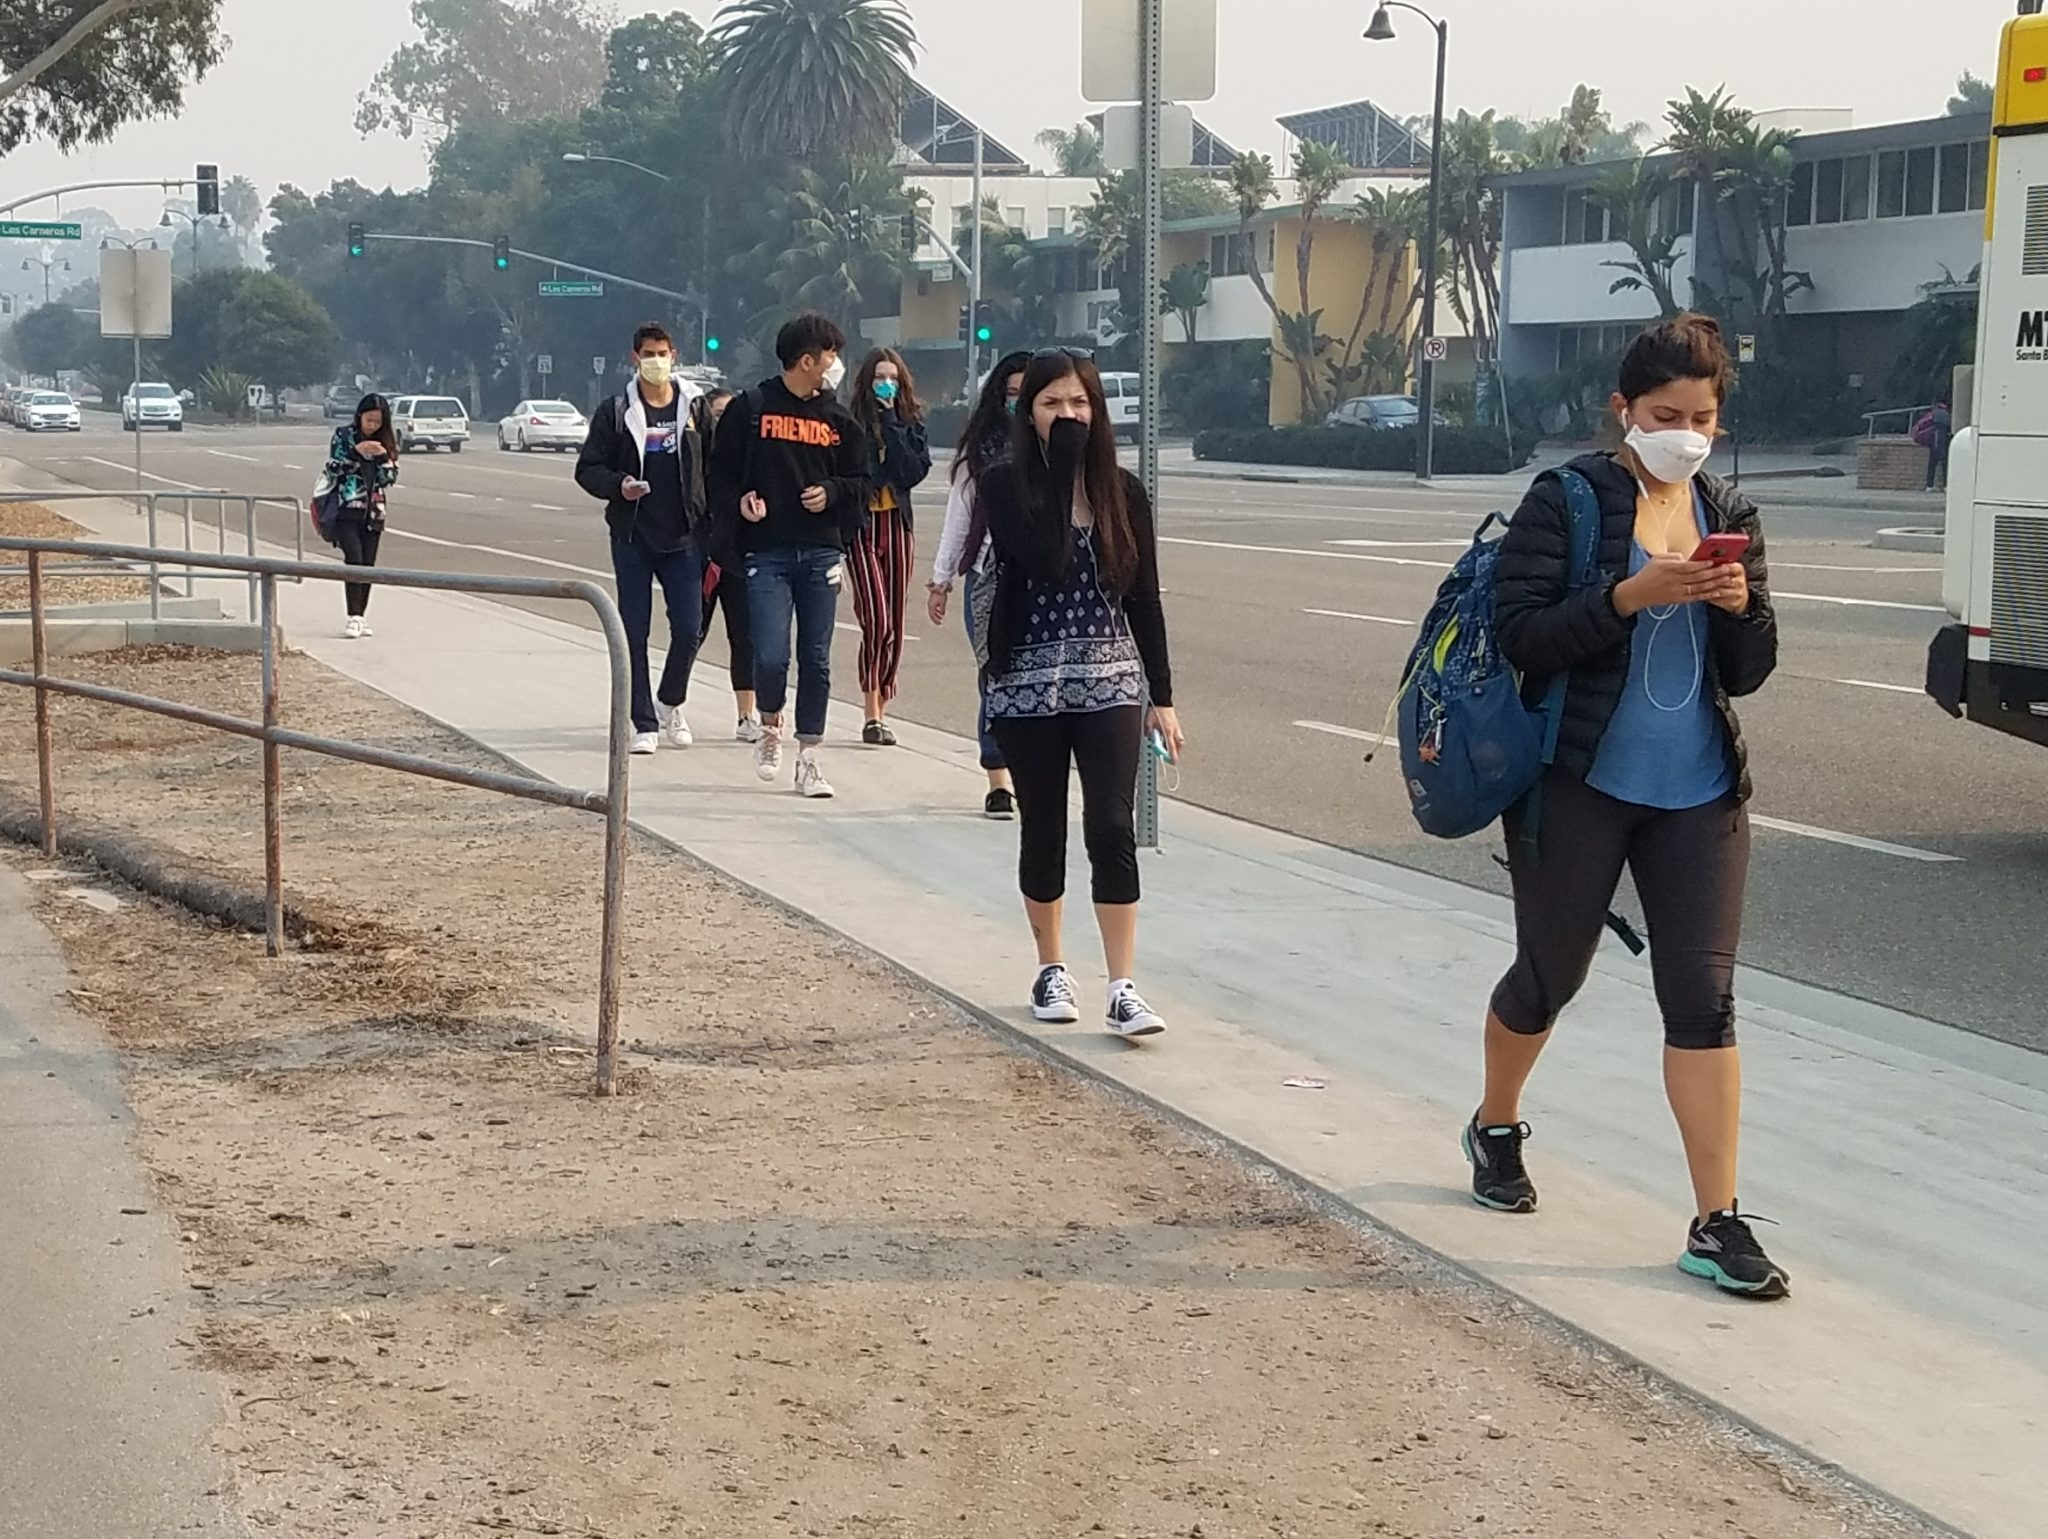 In Photos Ucsb Students Bike Through Ash Prepare For Finals Amid Socal Fires The Daily Nexus